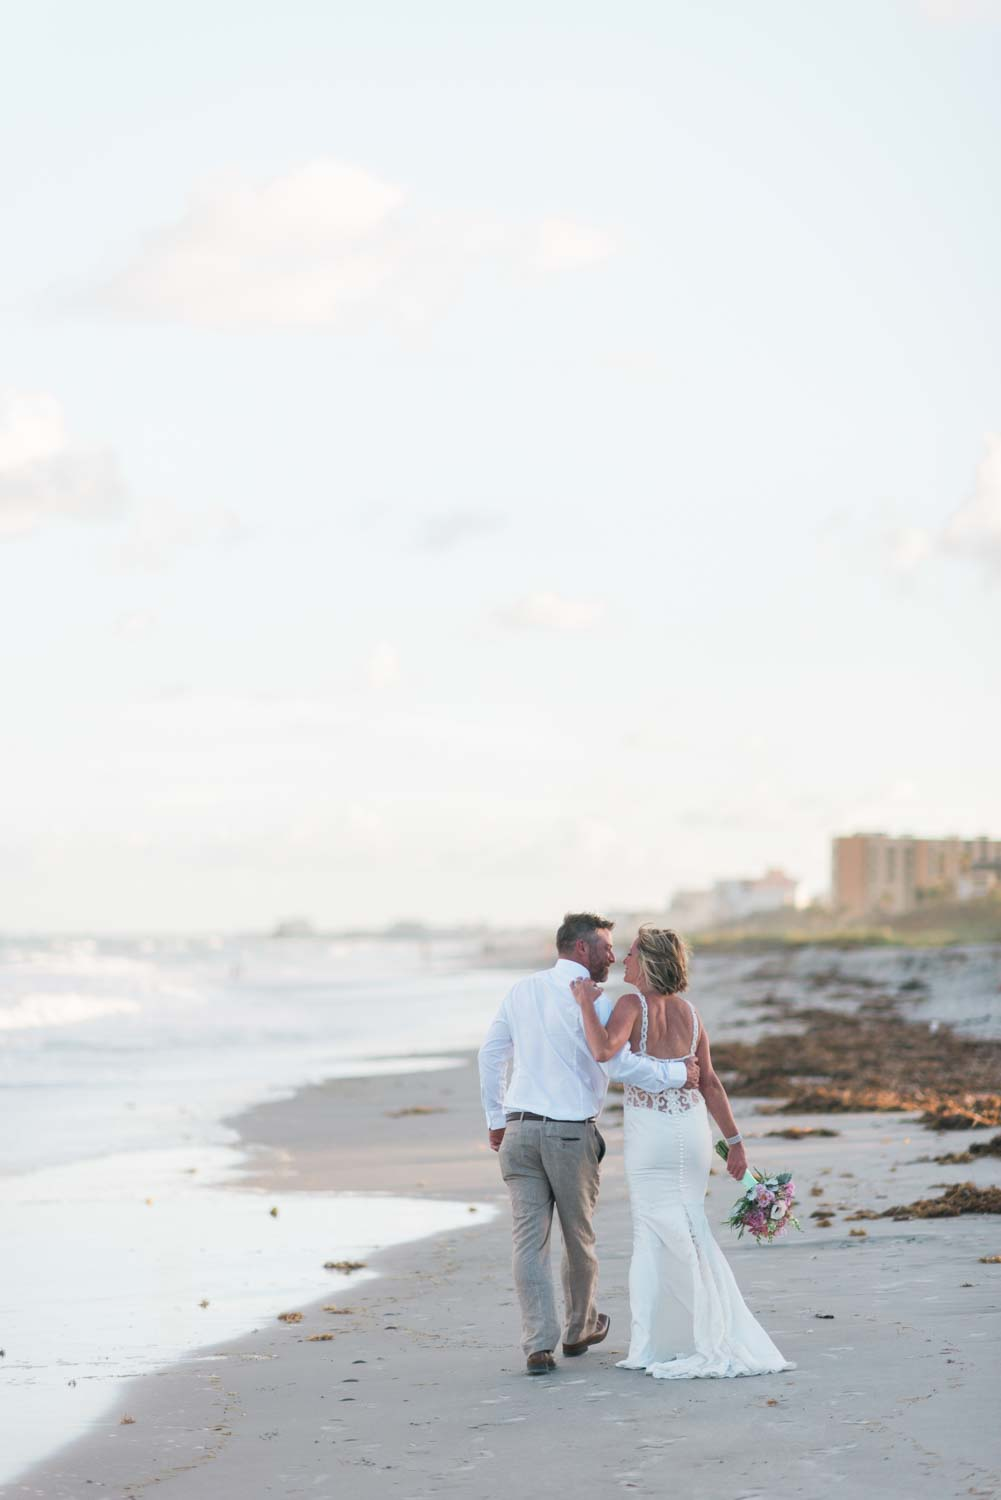 Cape Canaveral Beach Wedding Photographer - Rania Marie Photography-11.jpg